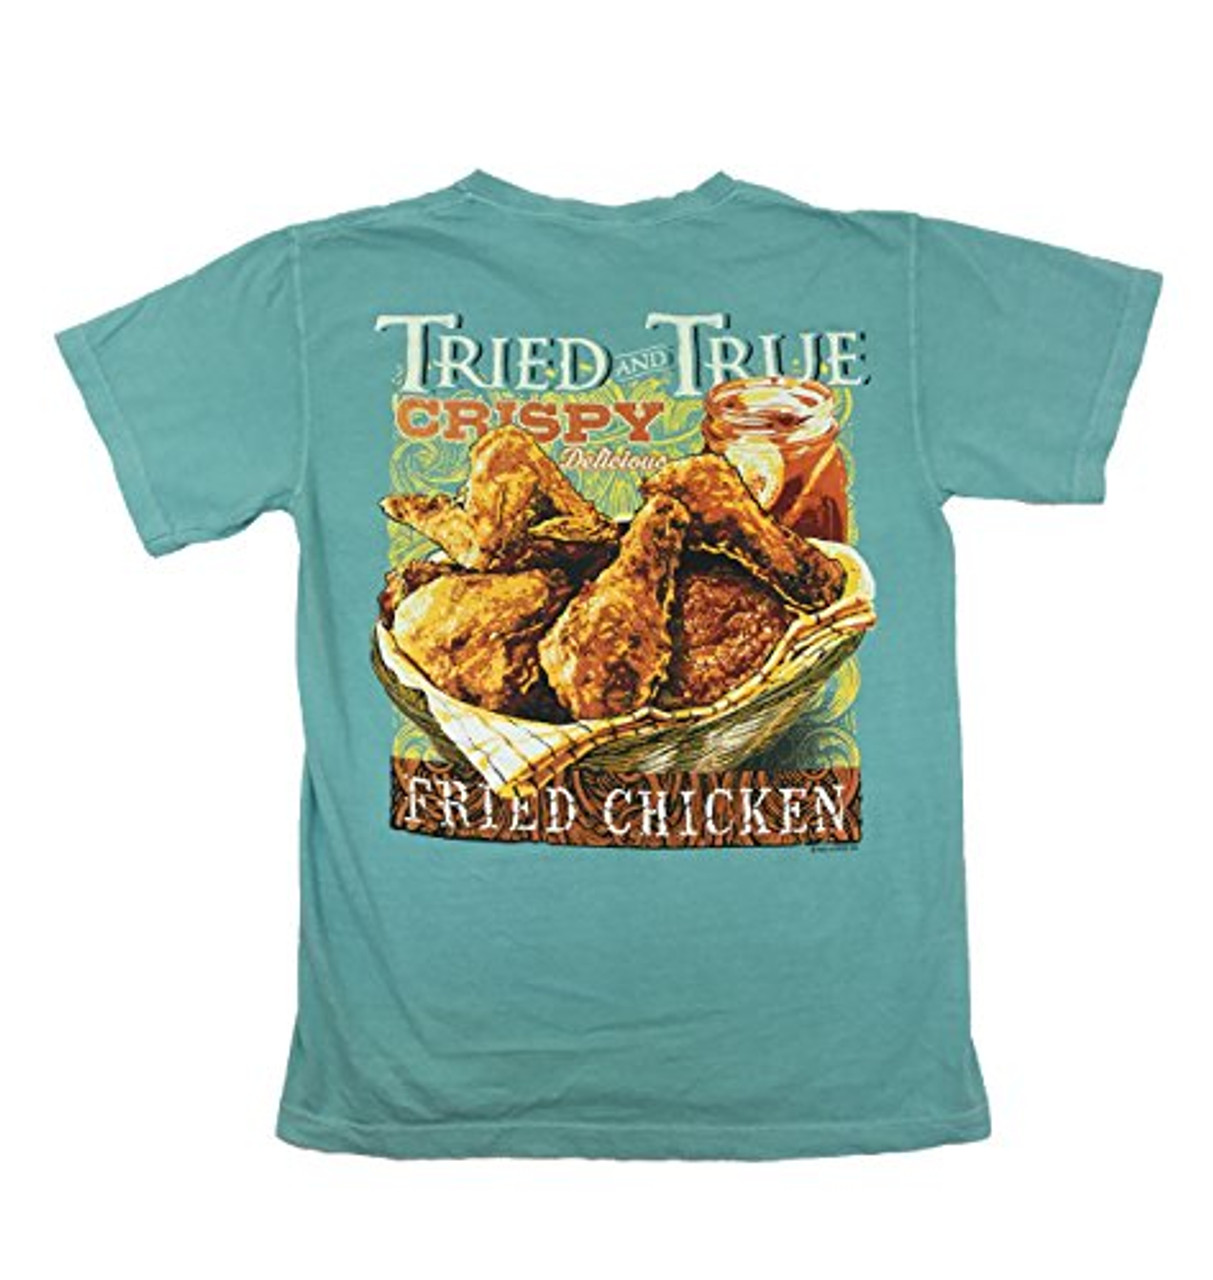 14bec929 Tried And True Comfort Colors Chalky Mint With Basket of Friend Chicken -  Trenz Shirt Company